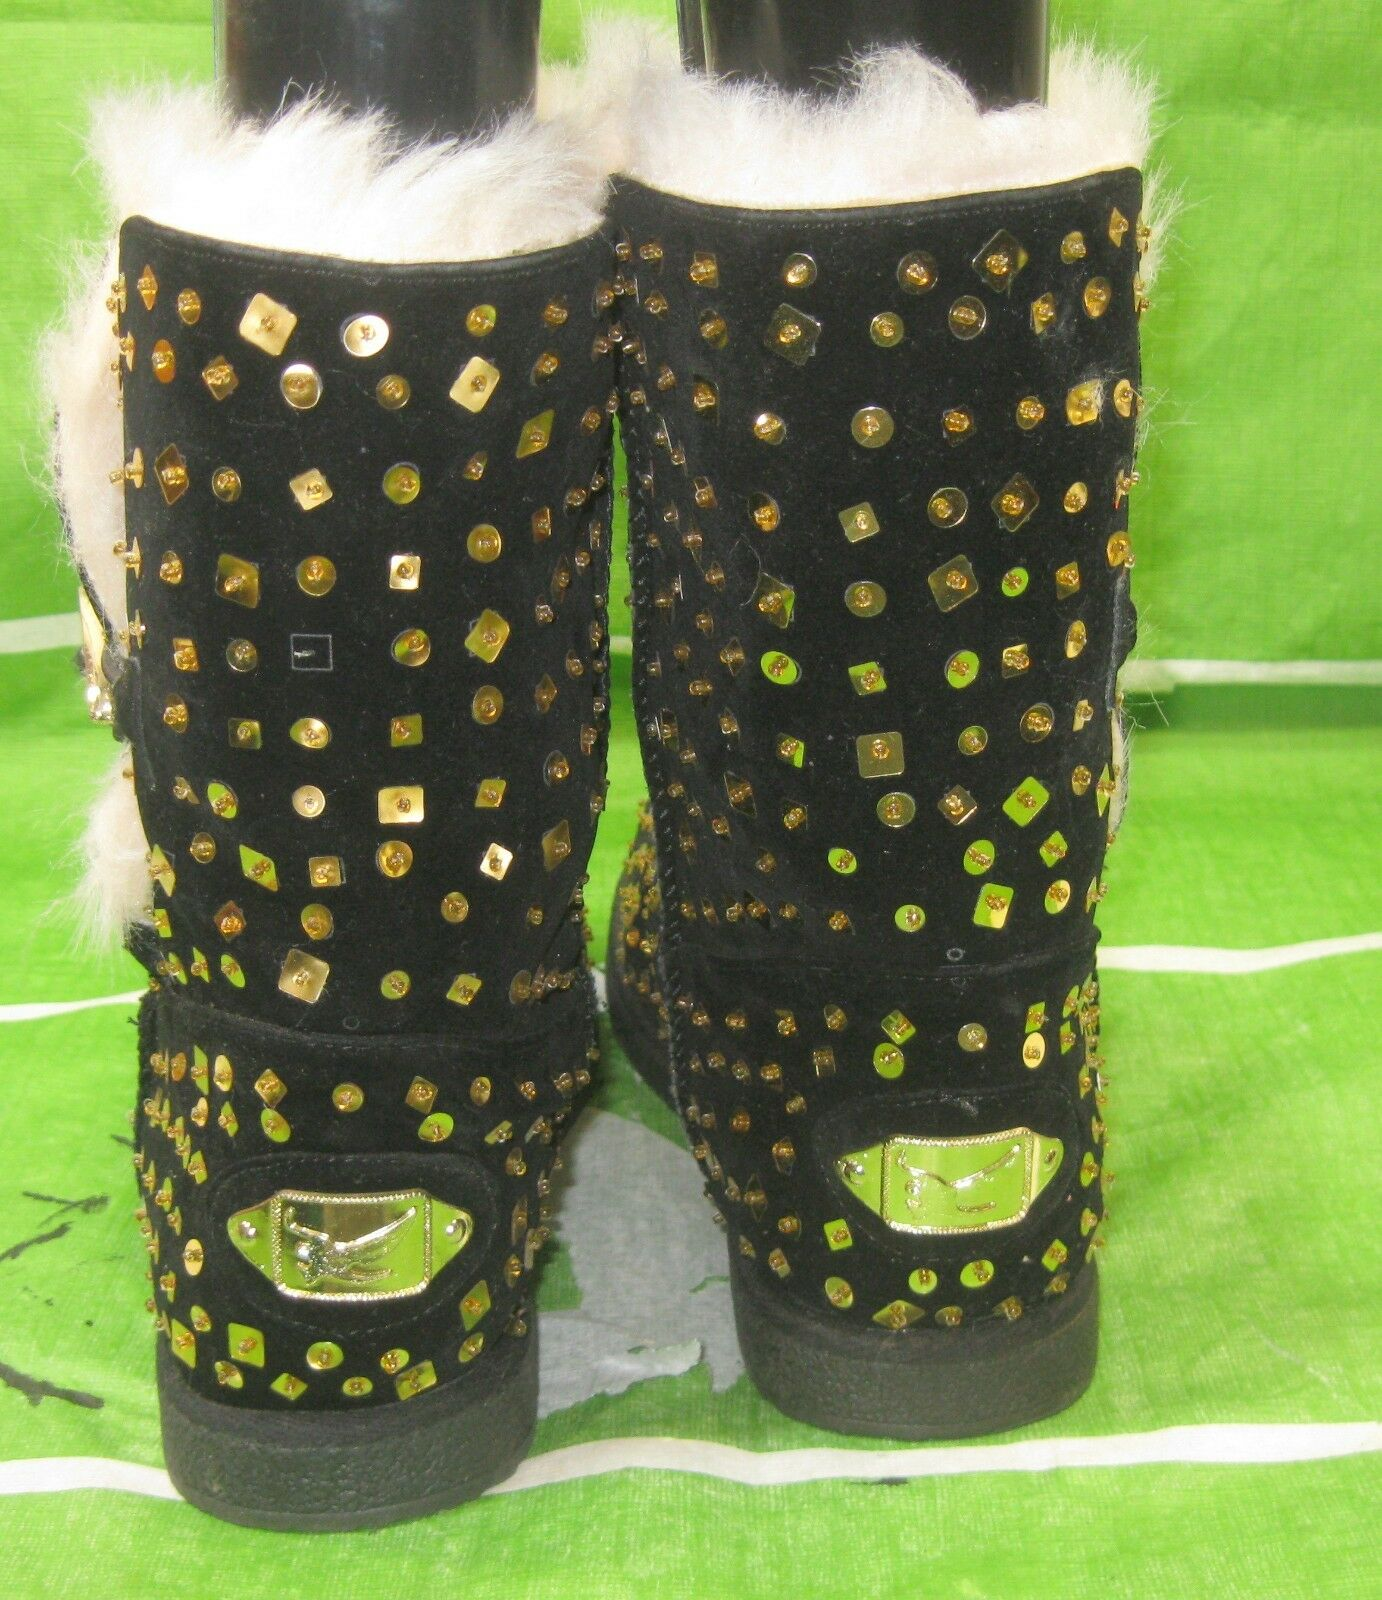 New ladies Ankle Nero/Gold Sequin Round Toe Winter Ankle ladies Boot Size 7 54bcf3